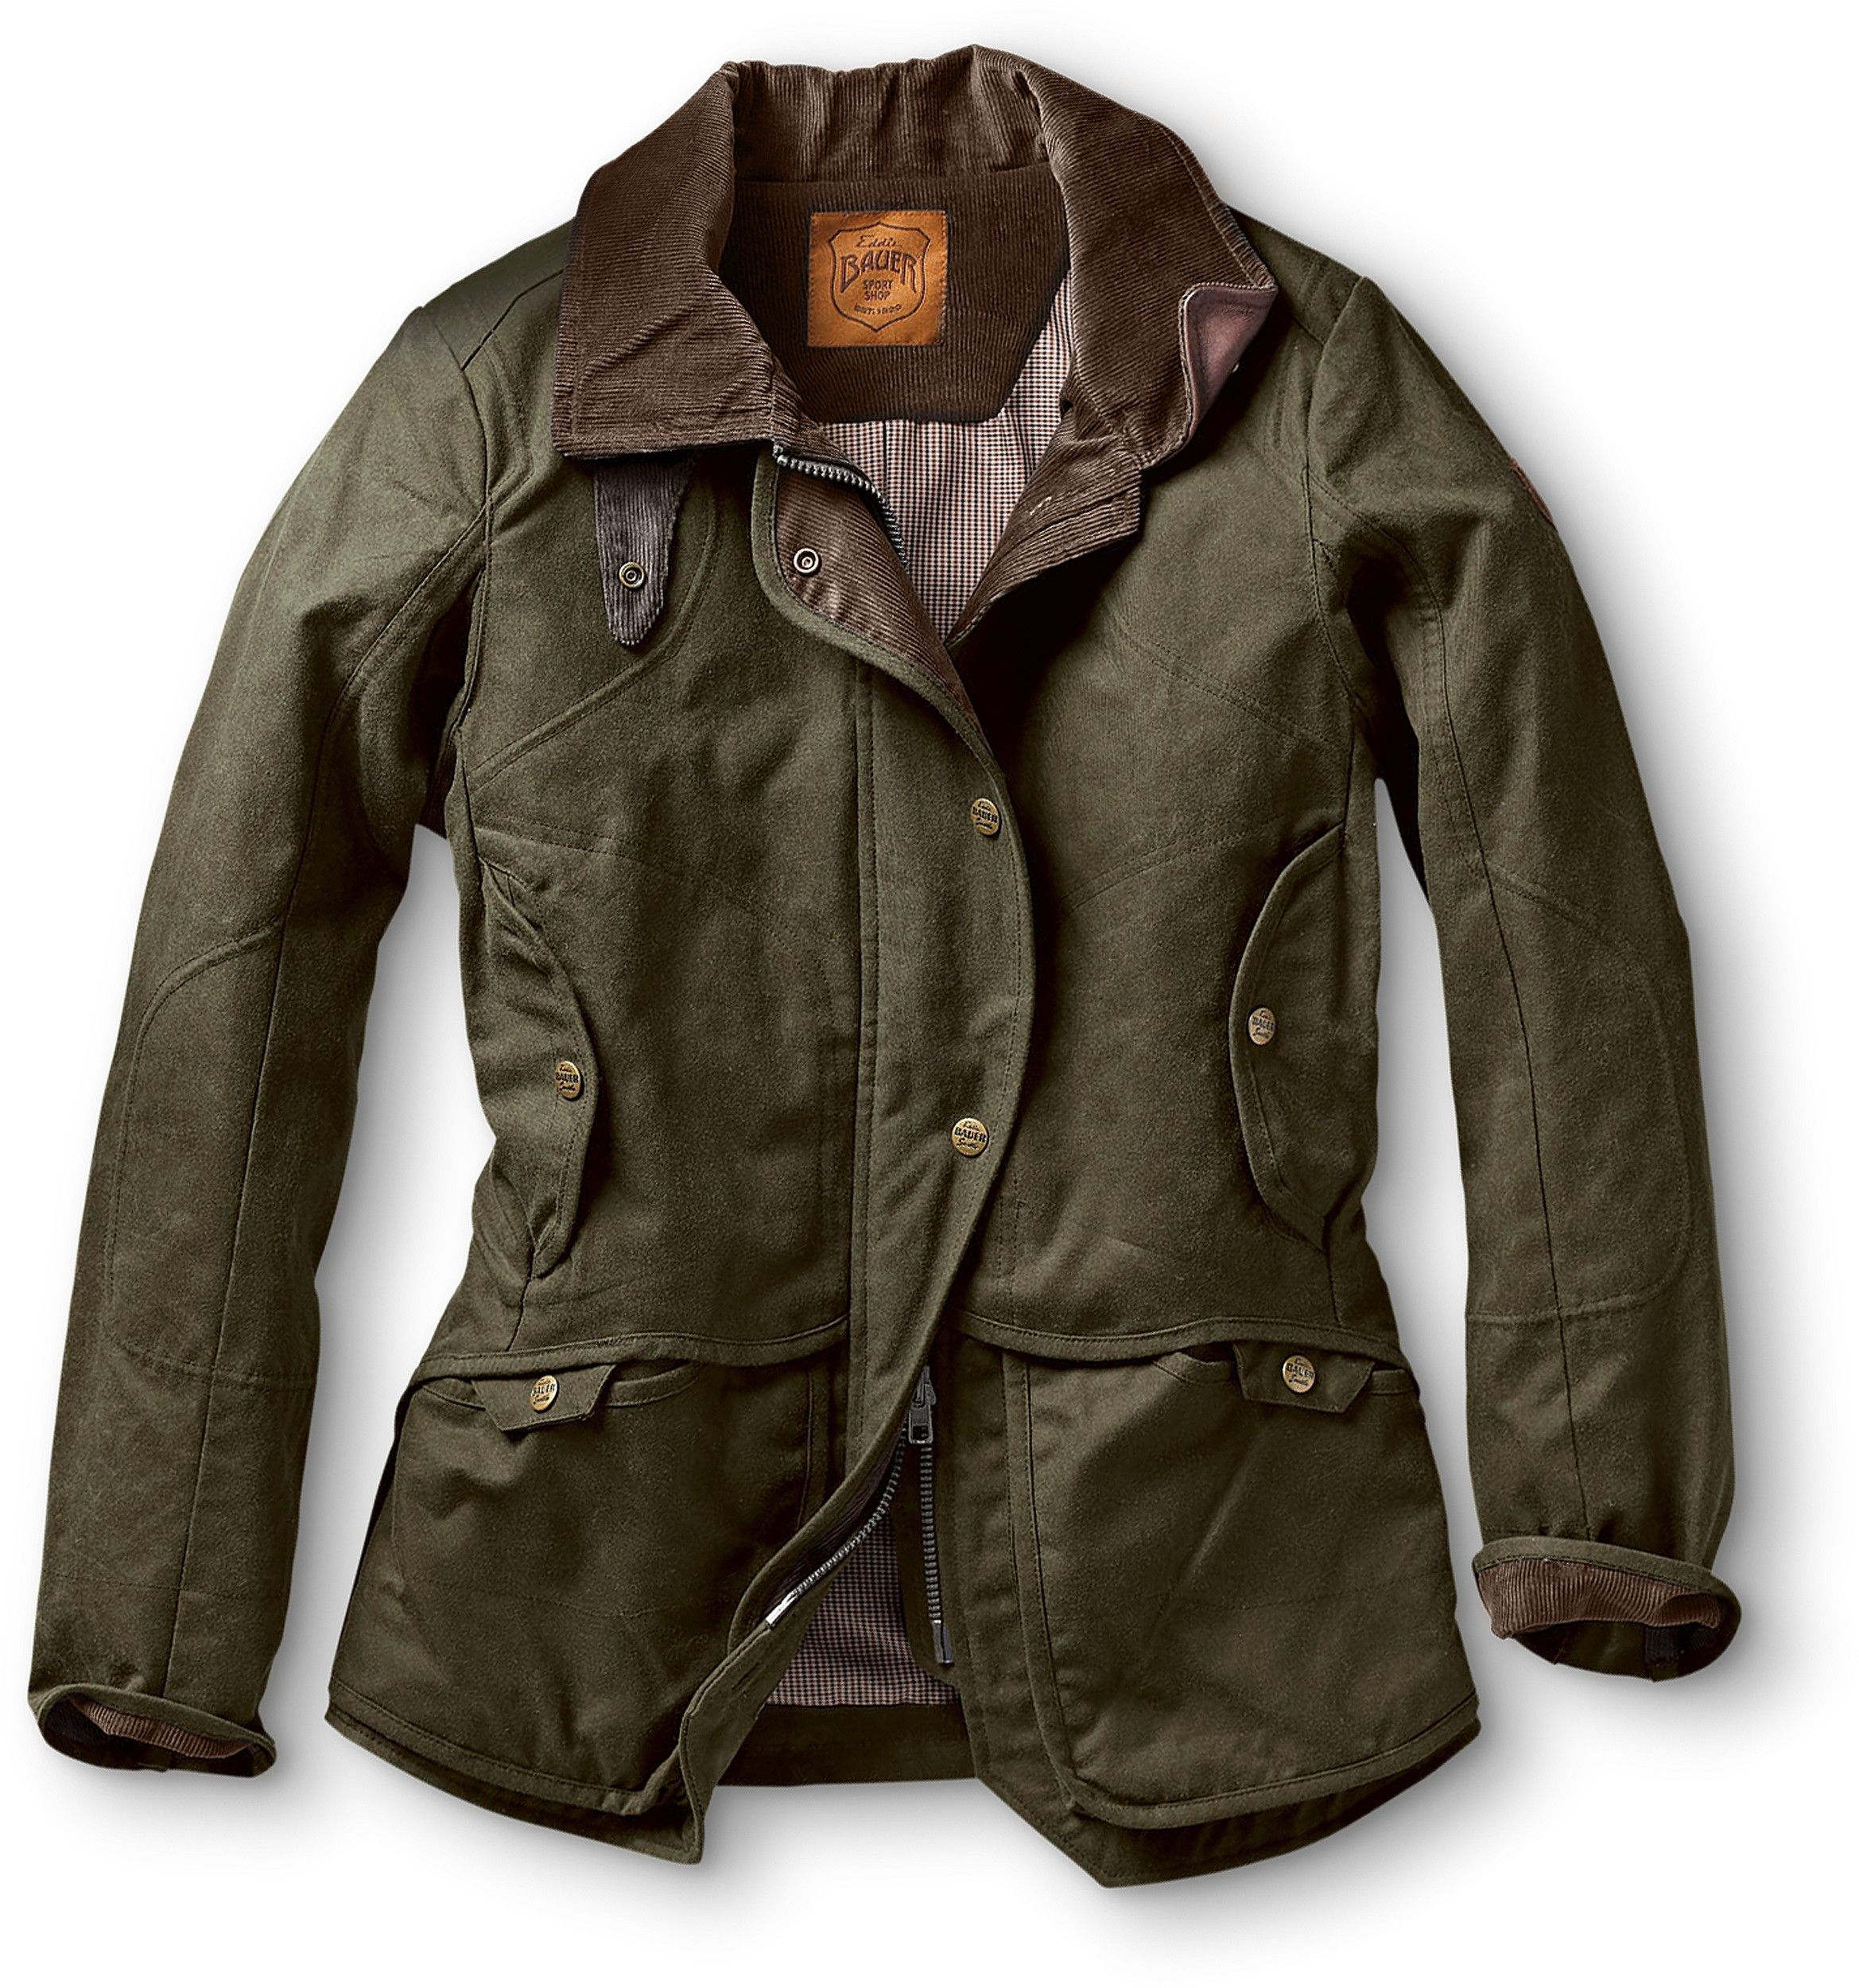 aa43bfcbdba Kettle Mountain StormShed Jacket | A classic field jacket built from top-shelf  waxed cotton fabric, this guide's favorite sheds rough weather in  traditional ...